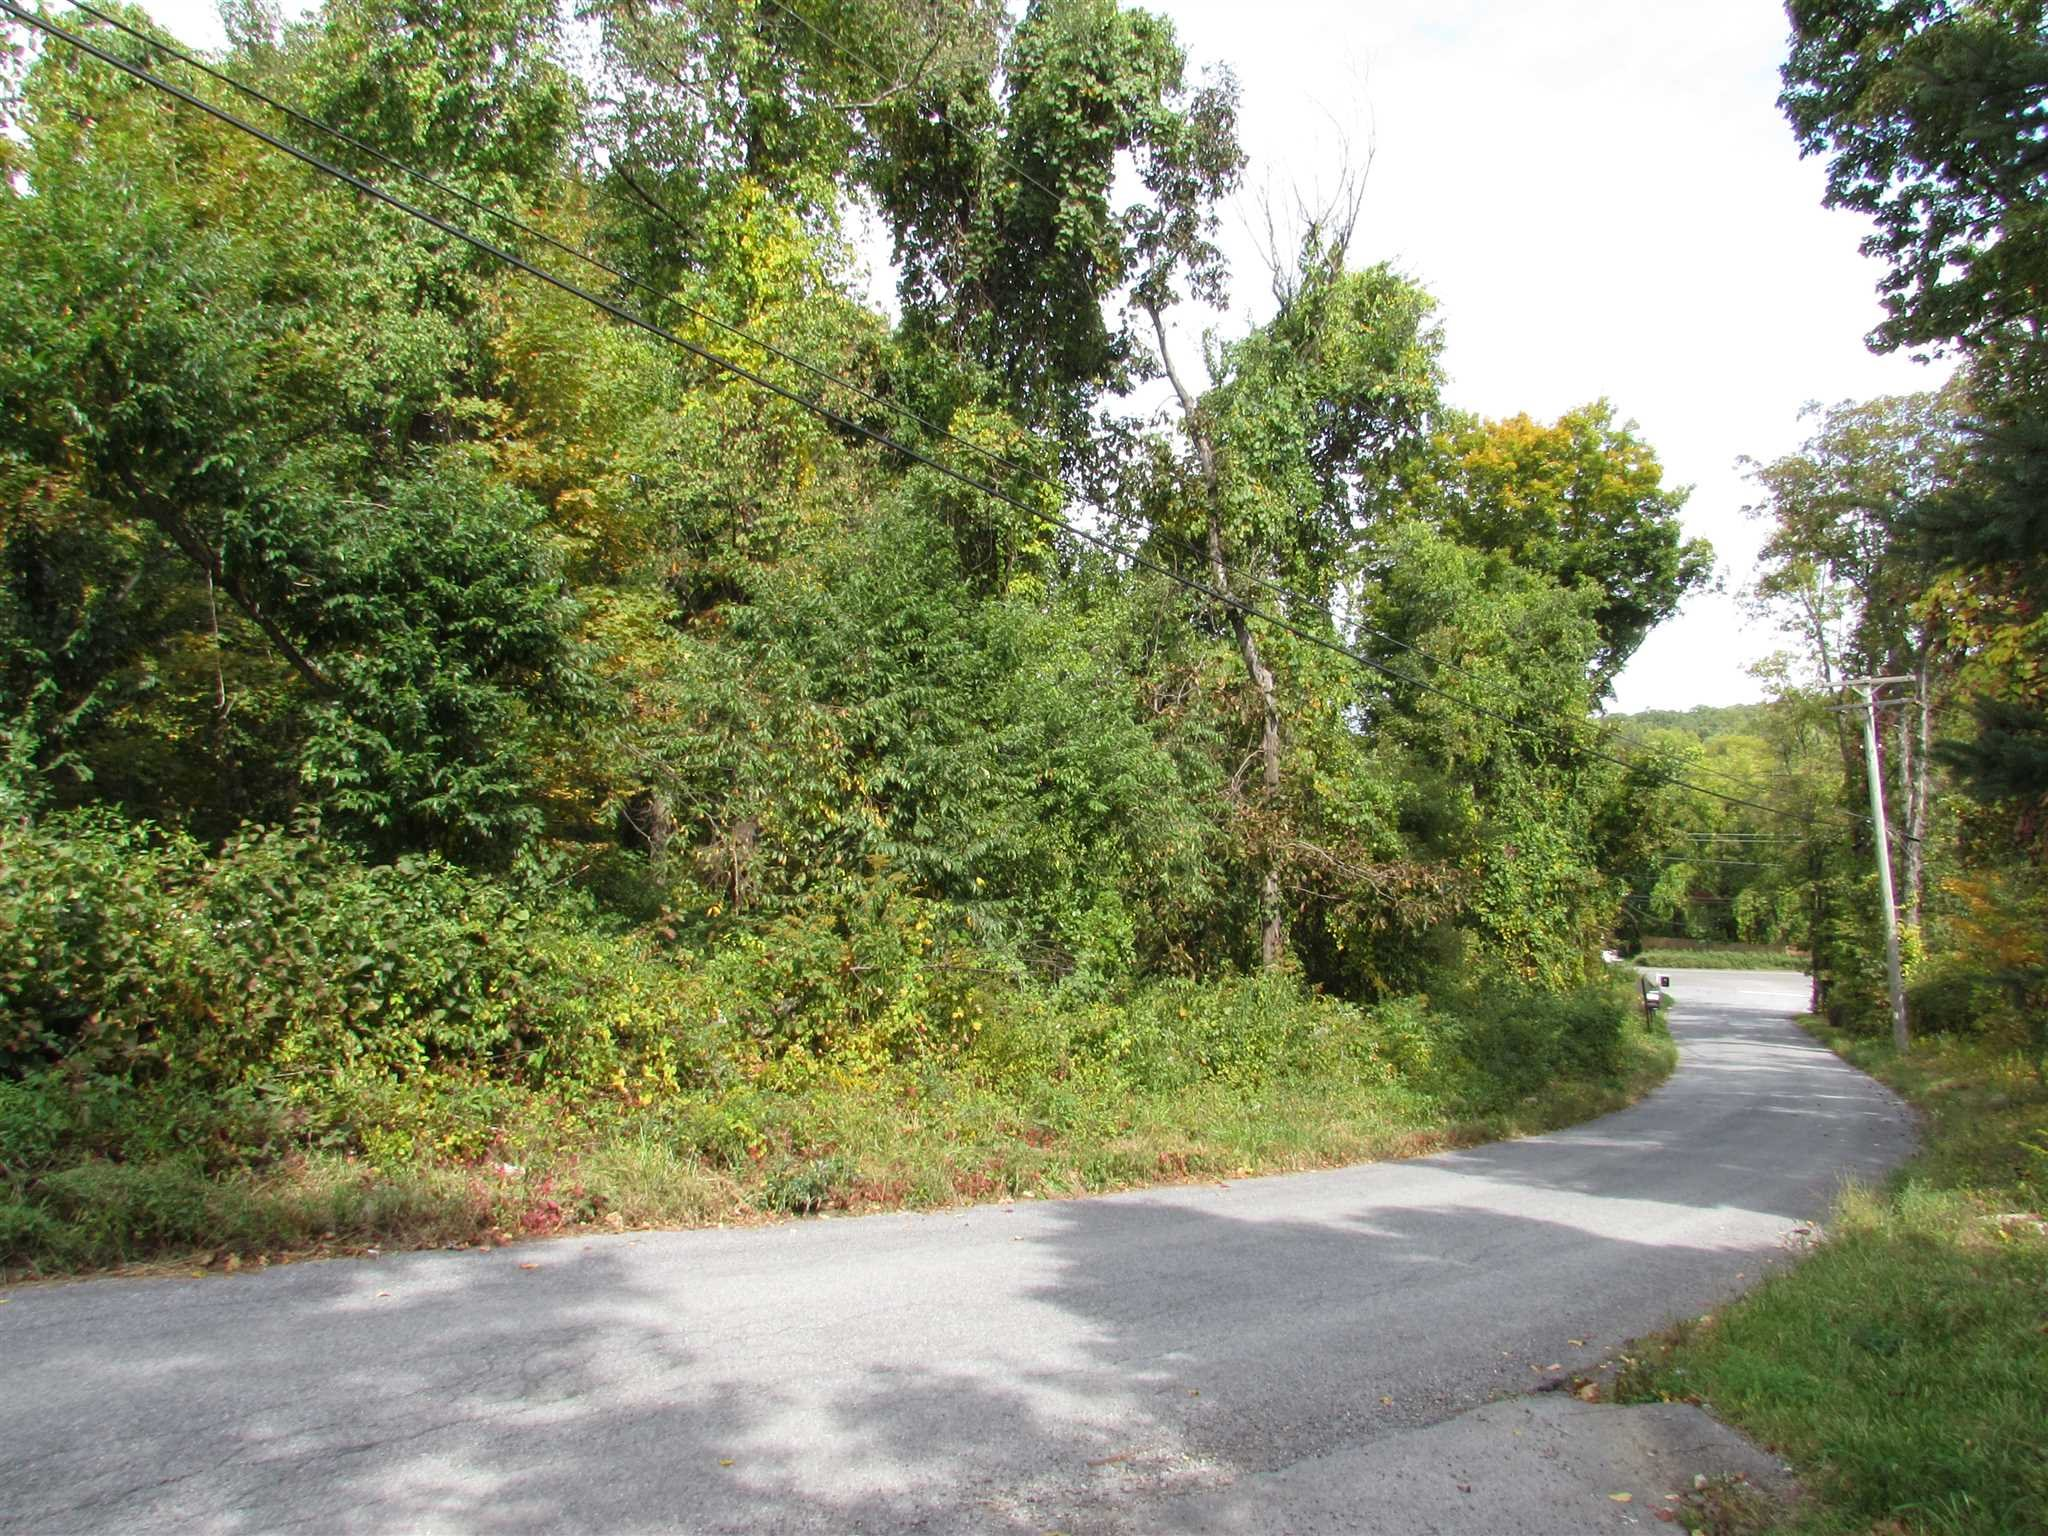 Land for Sale at 1617 ROUTE 9 1617 ROUTE 9 Philipstown, New York 10516 United States